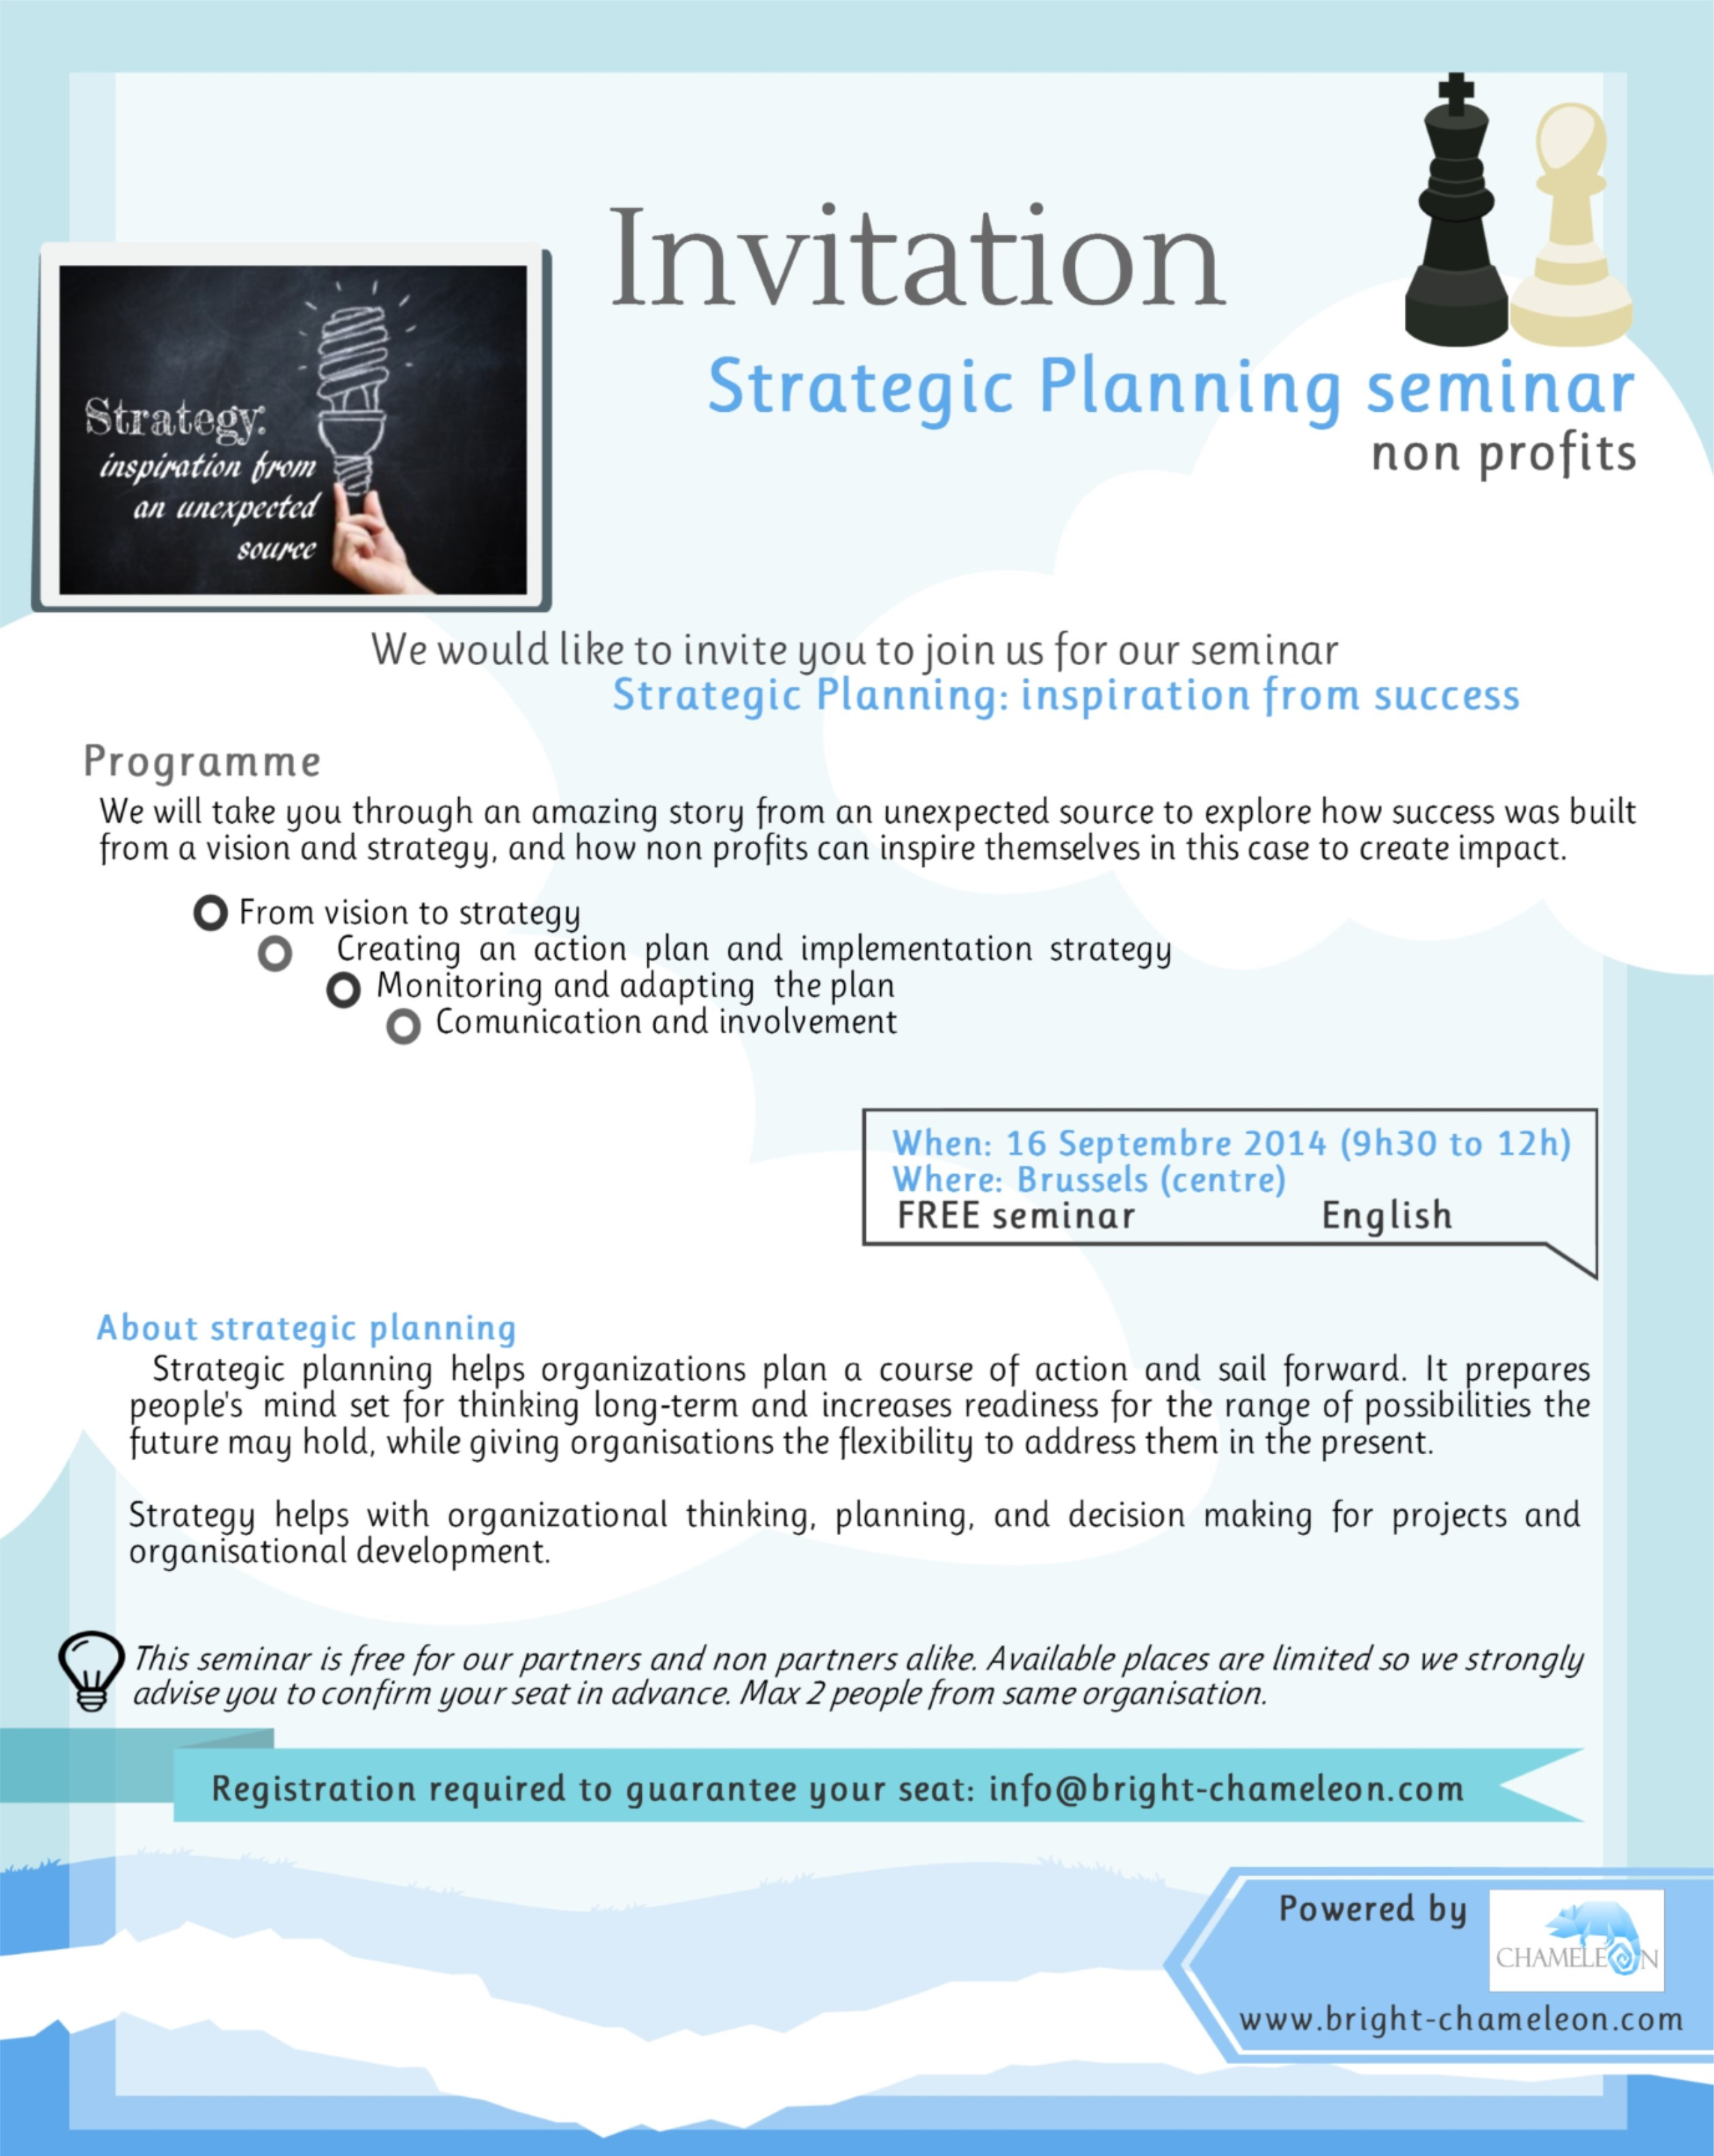 Invitation brochure Strategic planning for nonprofits seminar